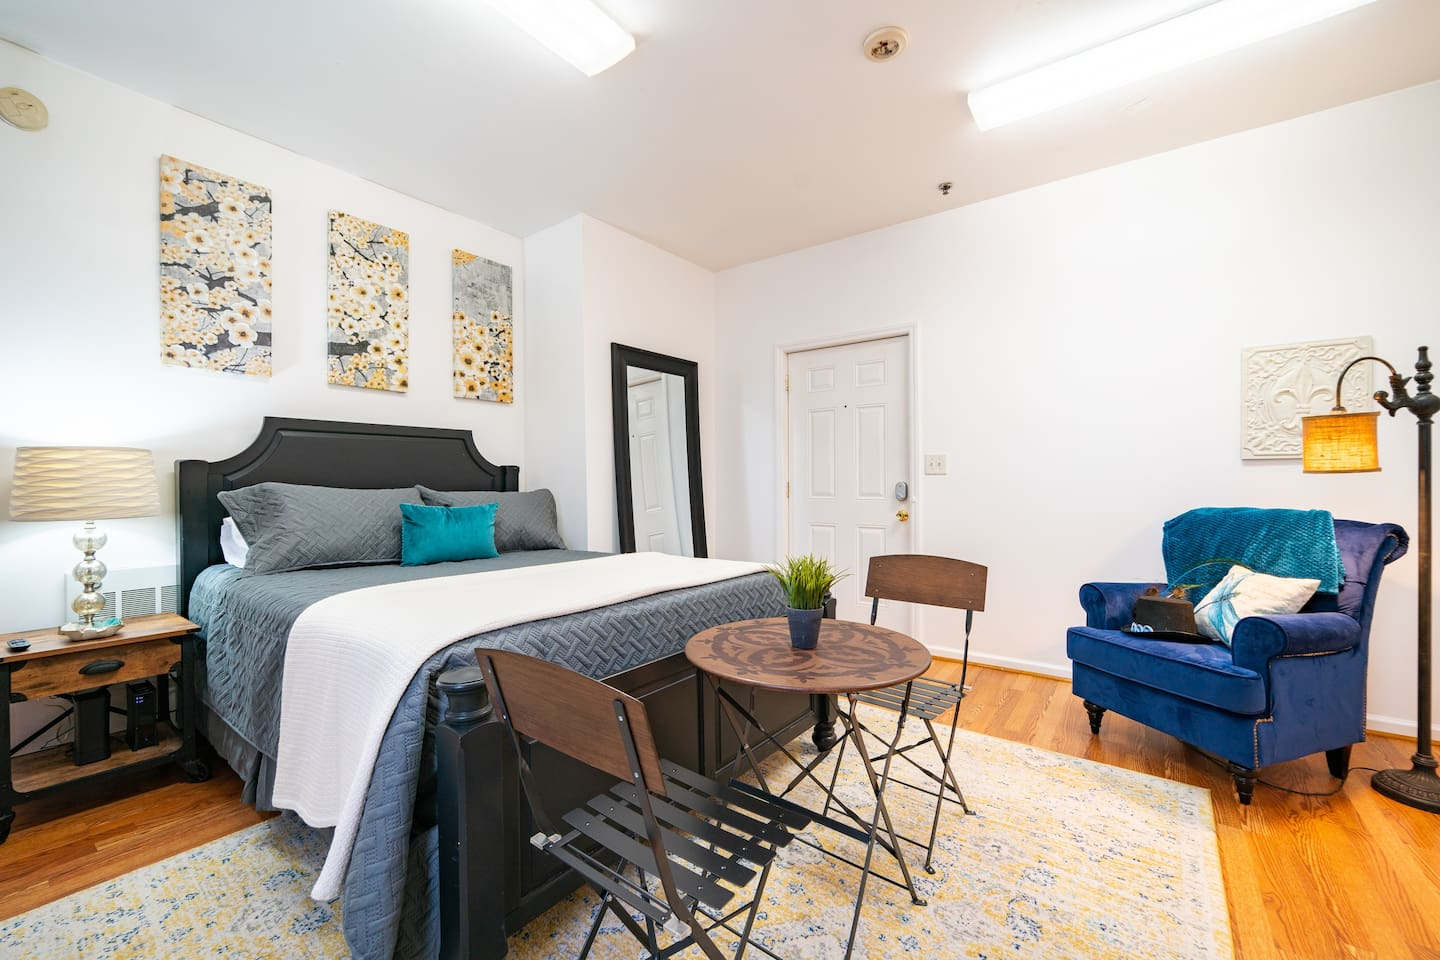 Bright and Welcoming. Come Stay with us while you explore Chapel Hill, Carrboro, Durham, Pittsboro and Raleigh.